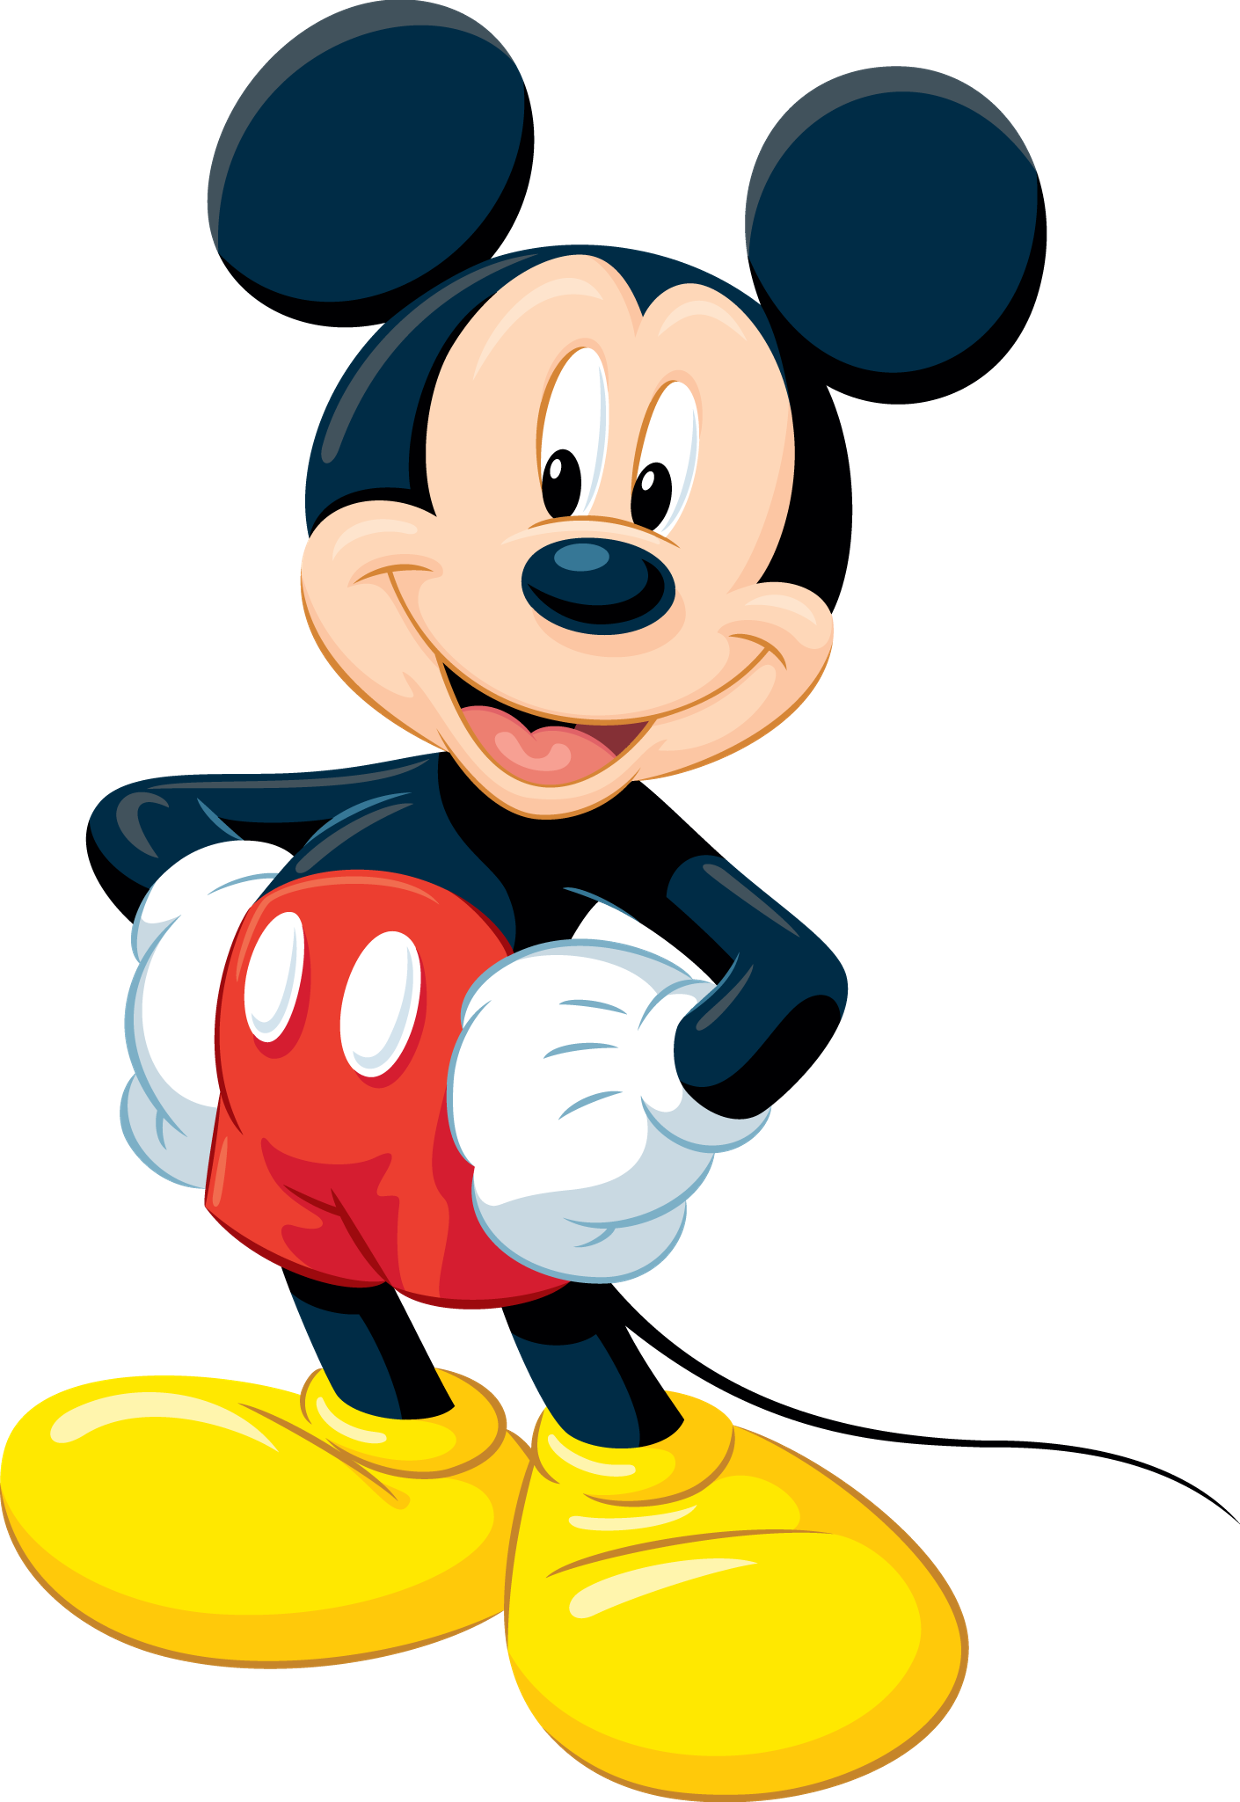 When did Mickey Mouse come out - answers.com